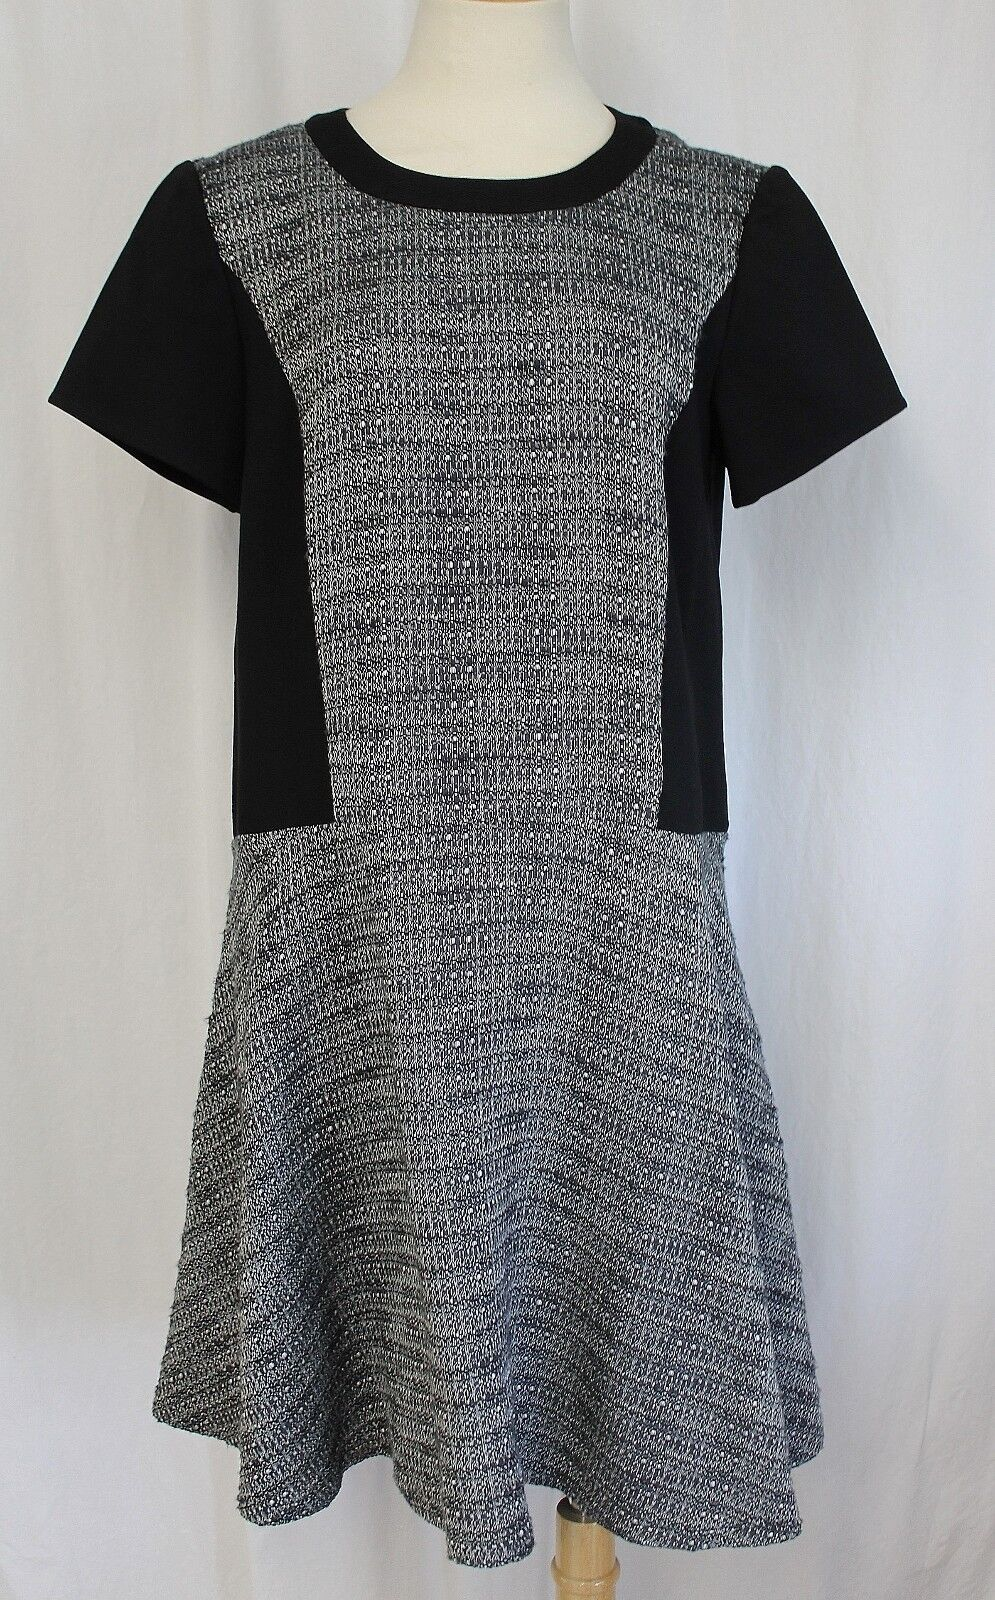 MADEWELL TEXTURED TRIBUNE DRESS CHARCOAL SIZE 6 NWT B1409